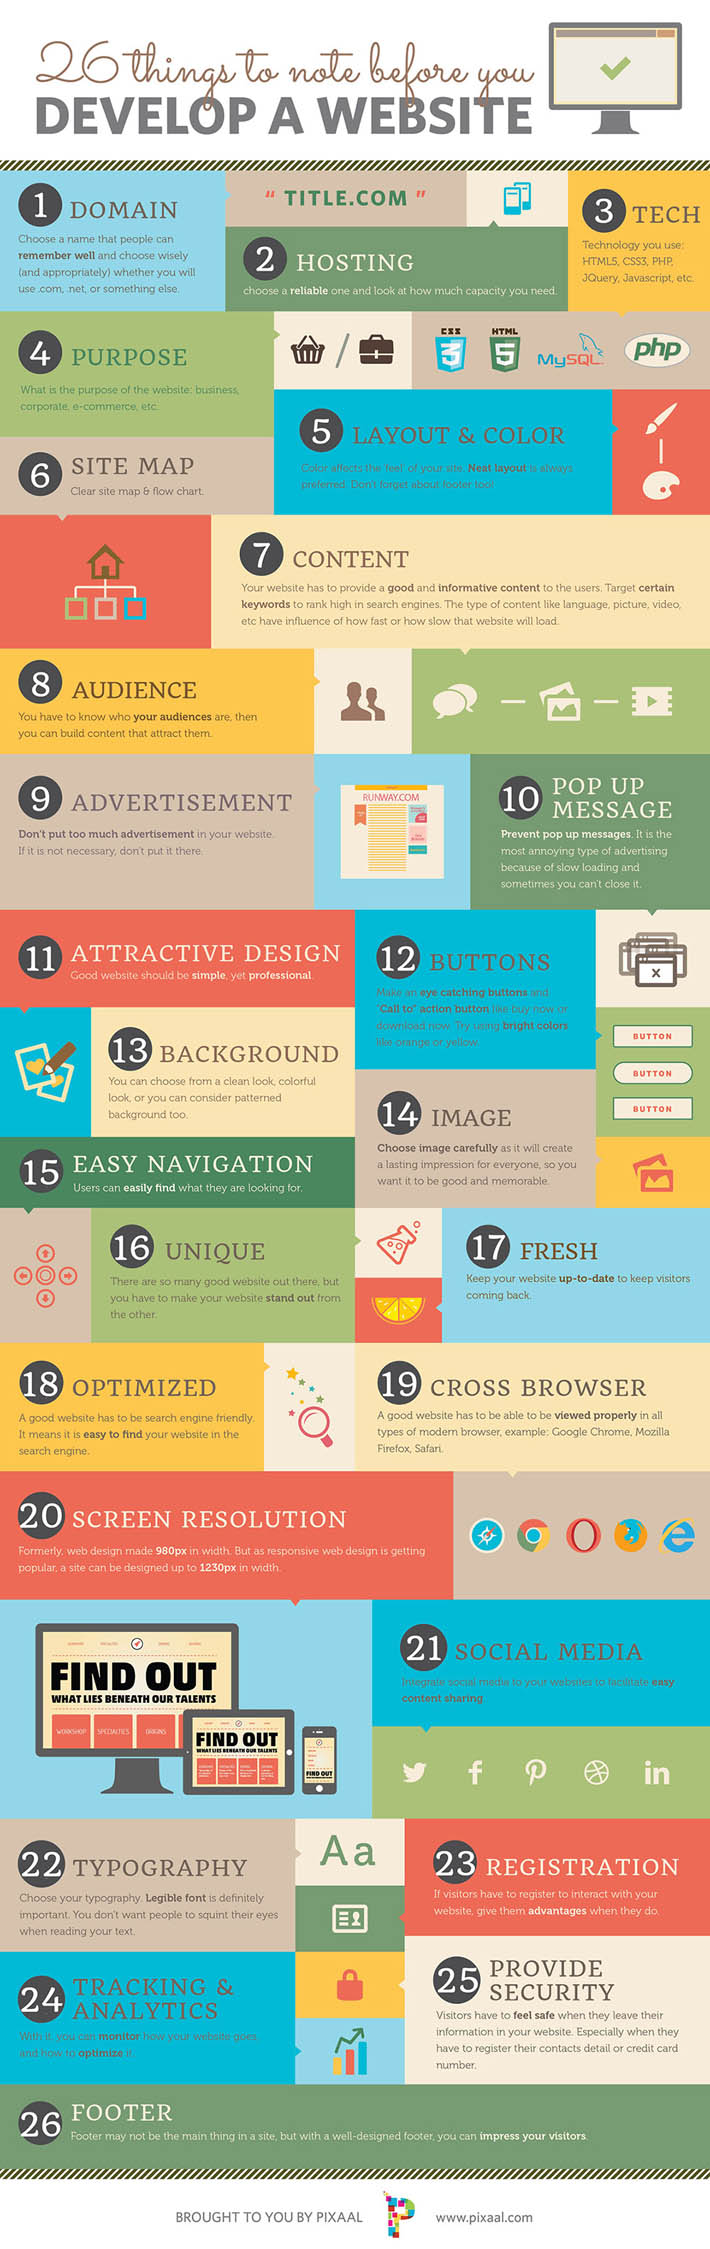 26 Things To Consider Before Developing A Brand New ...